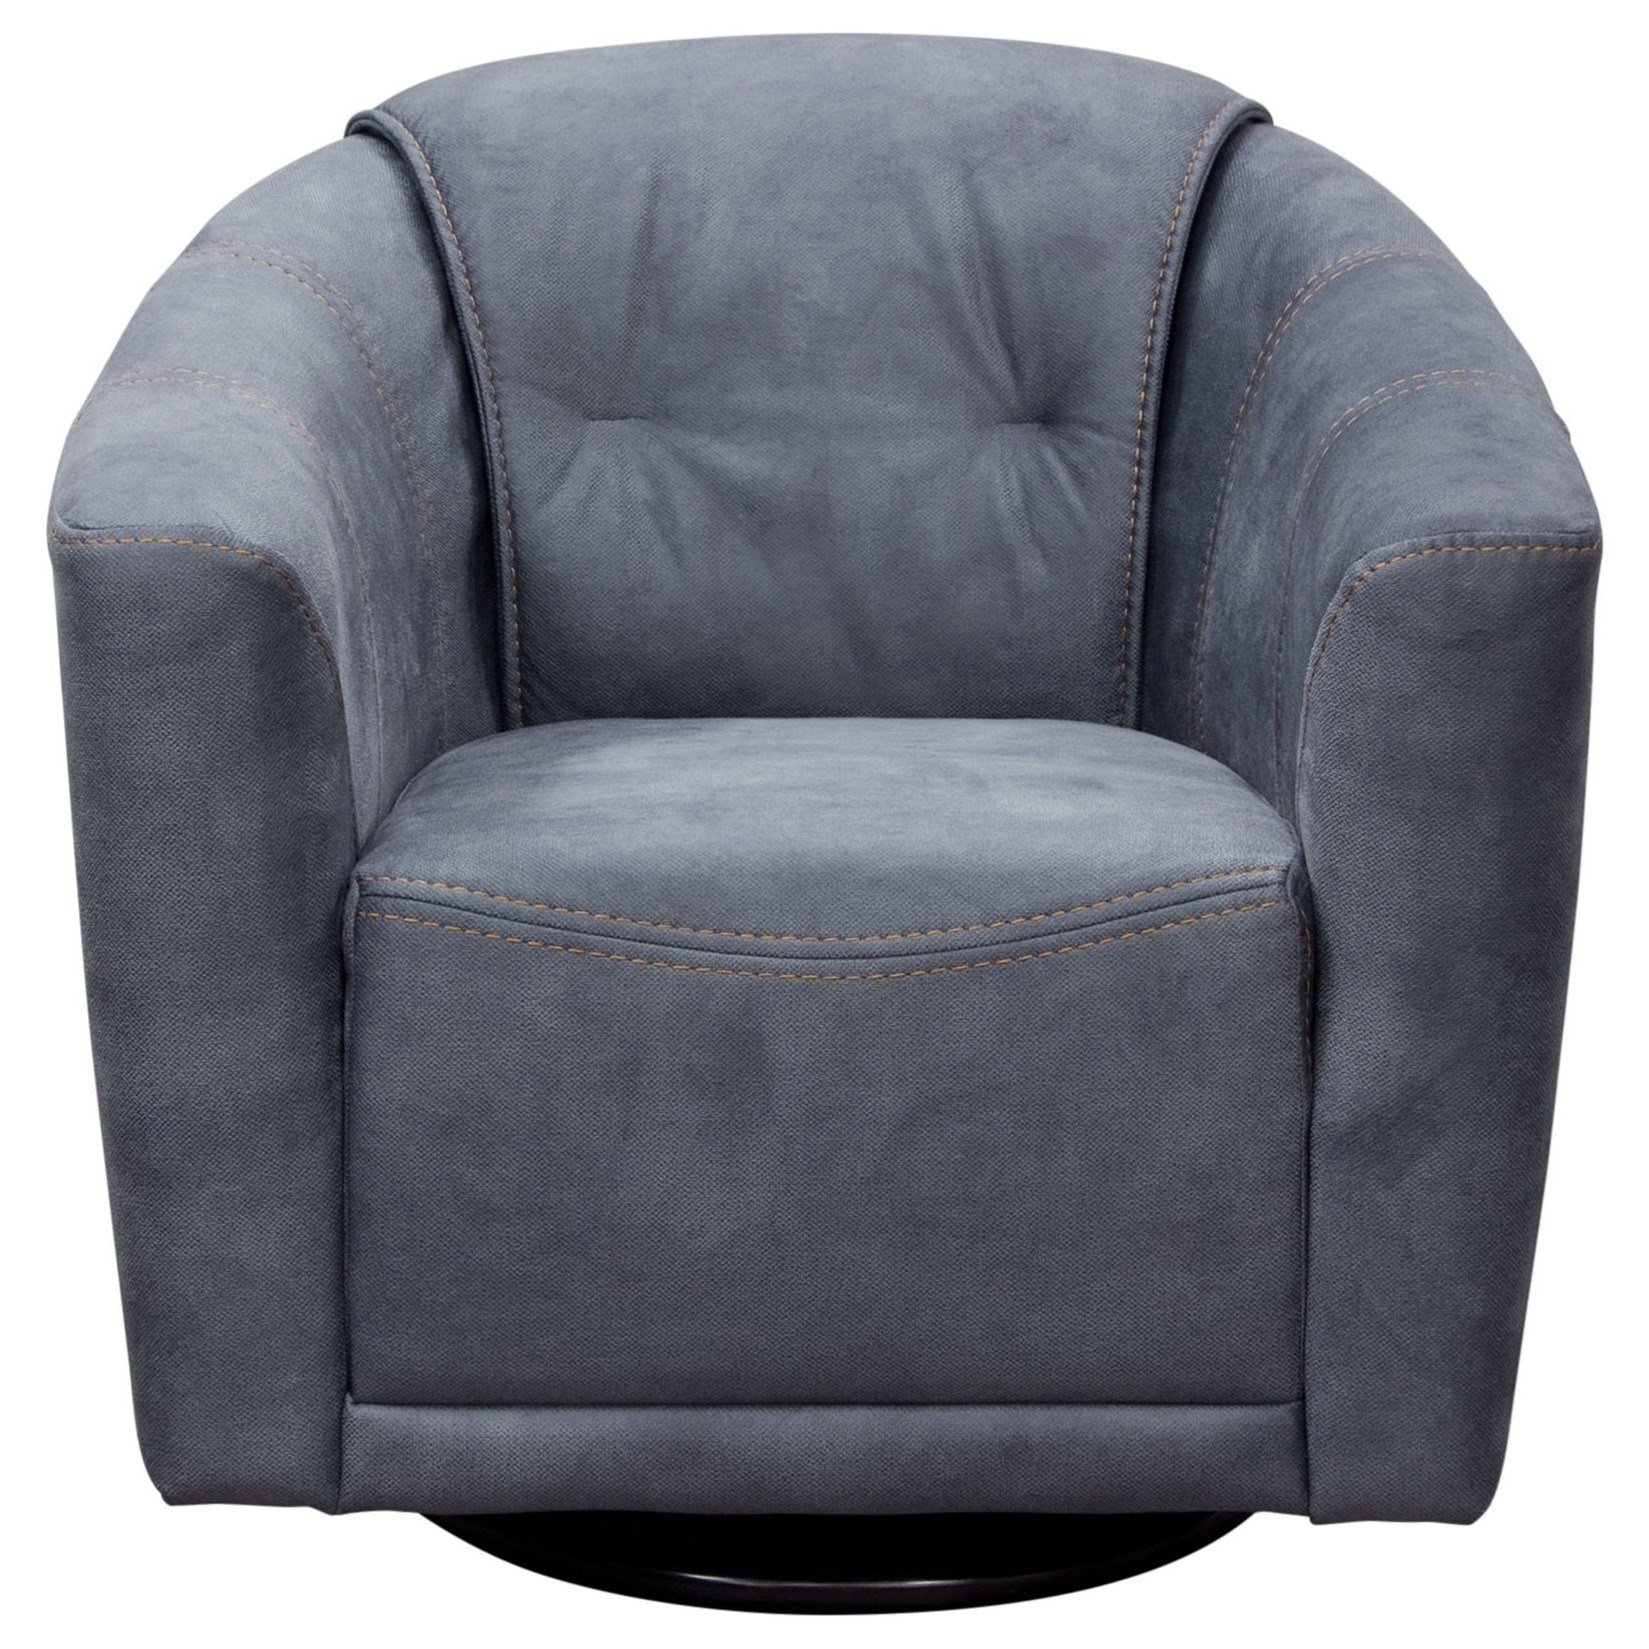 Diamond Sofa Accent Chairs Murphychgr Swivel Accent Chair In Light Intended For Umber Grey Swivel Accent Chairs (View 7 of 20)